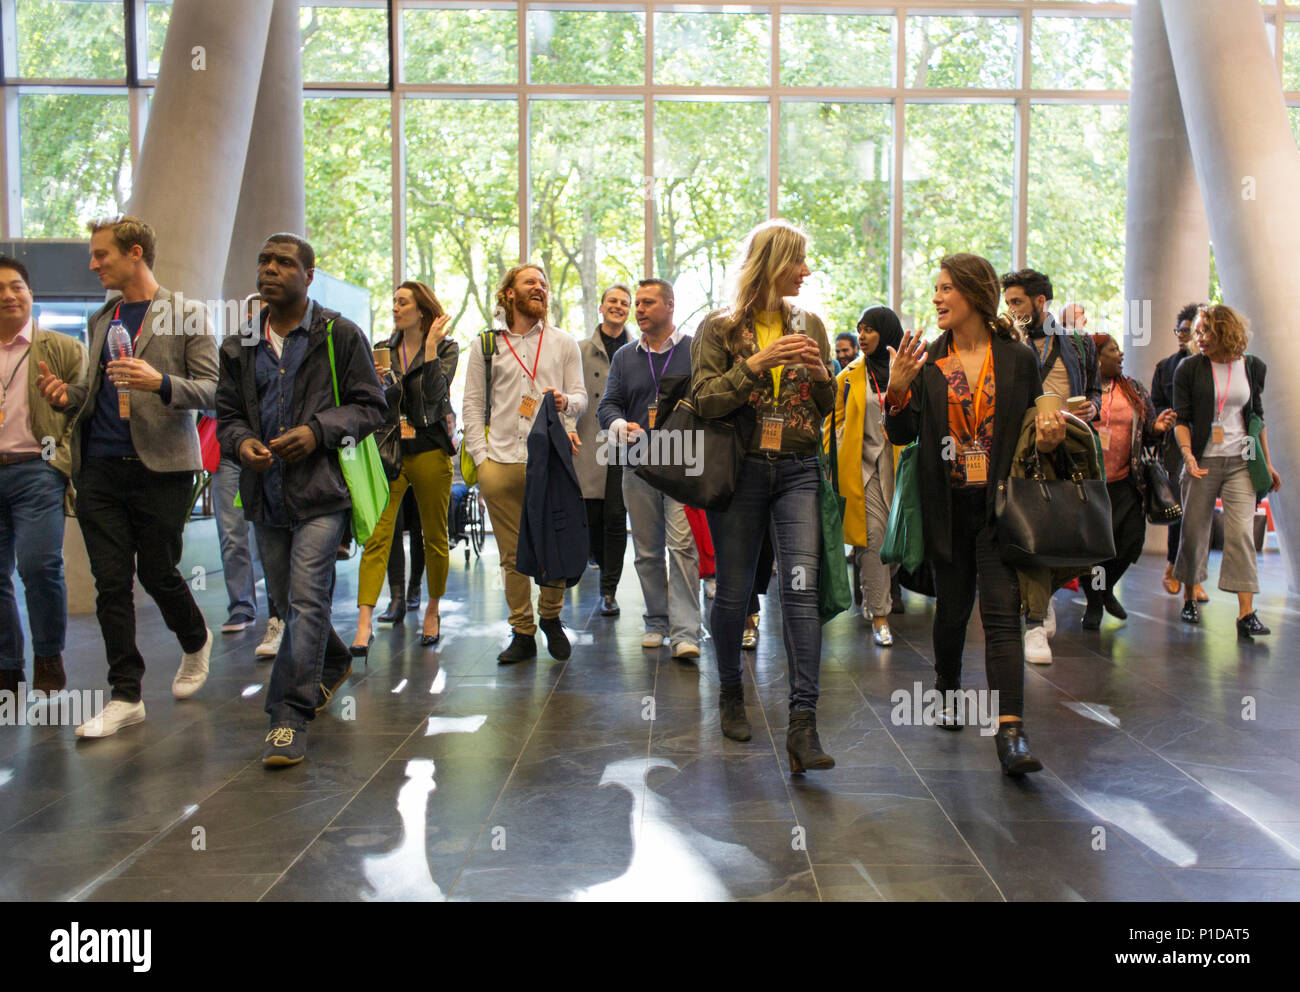 Business people arriving at conference, walking in lobby - Stock Image